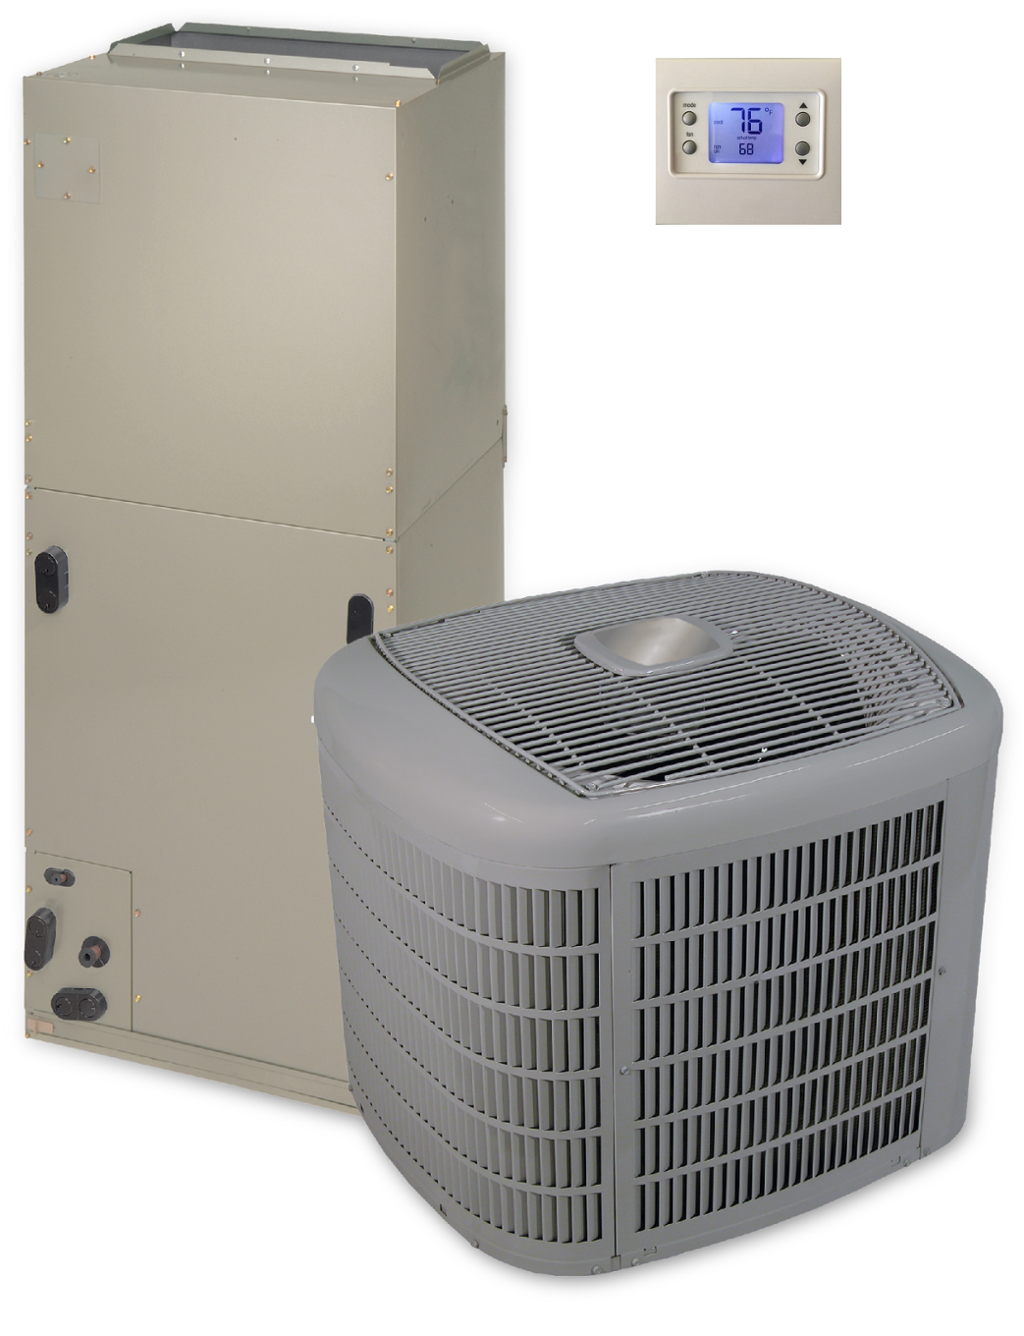 Top 5 Questions and Answers About Air Conditioning